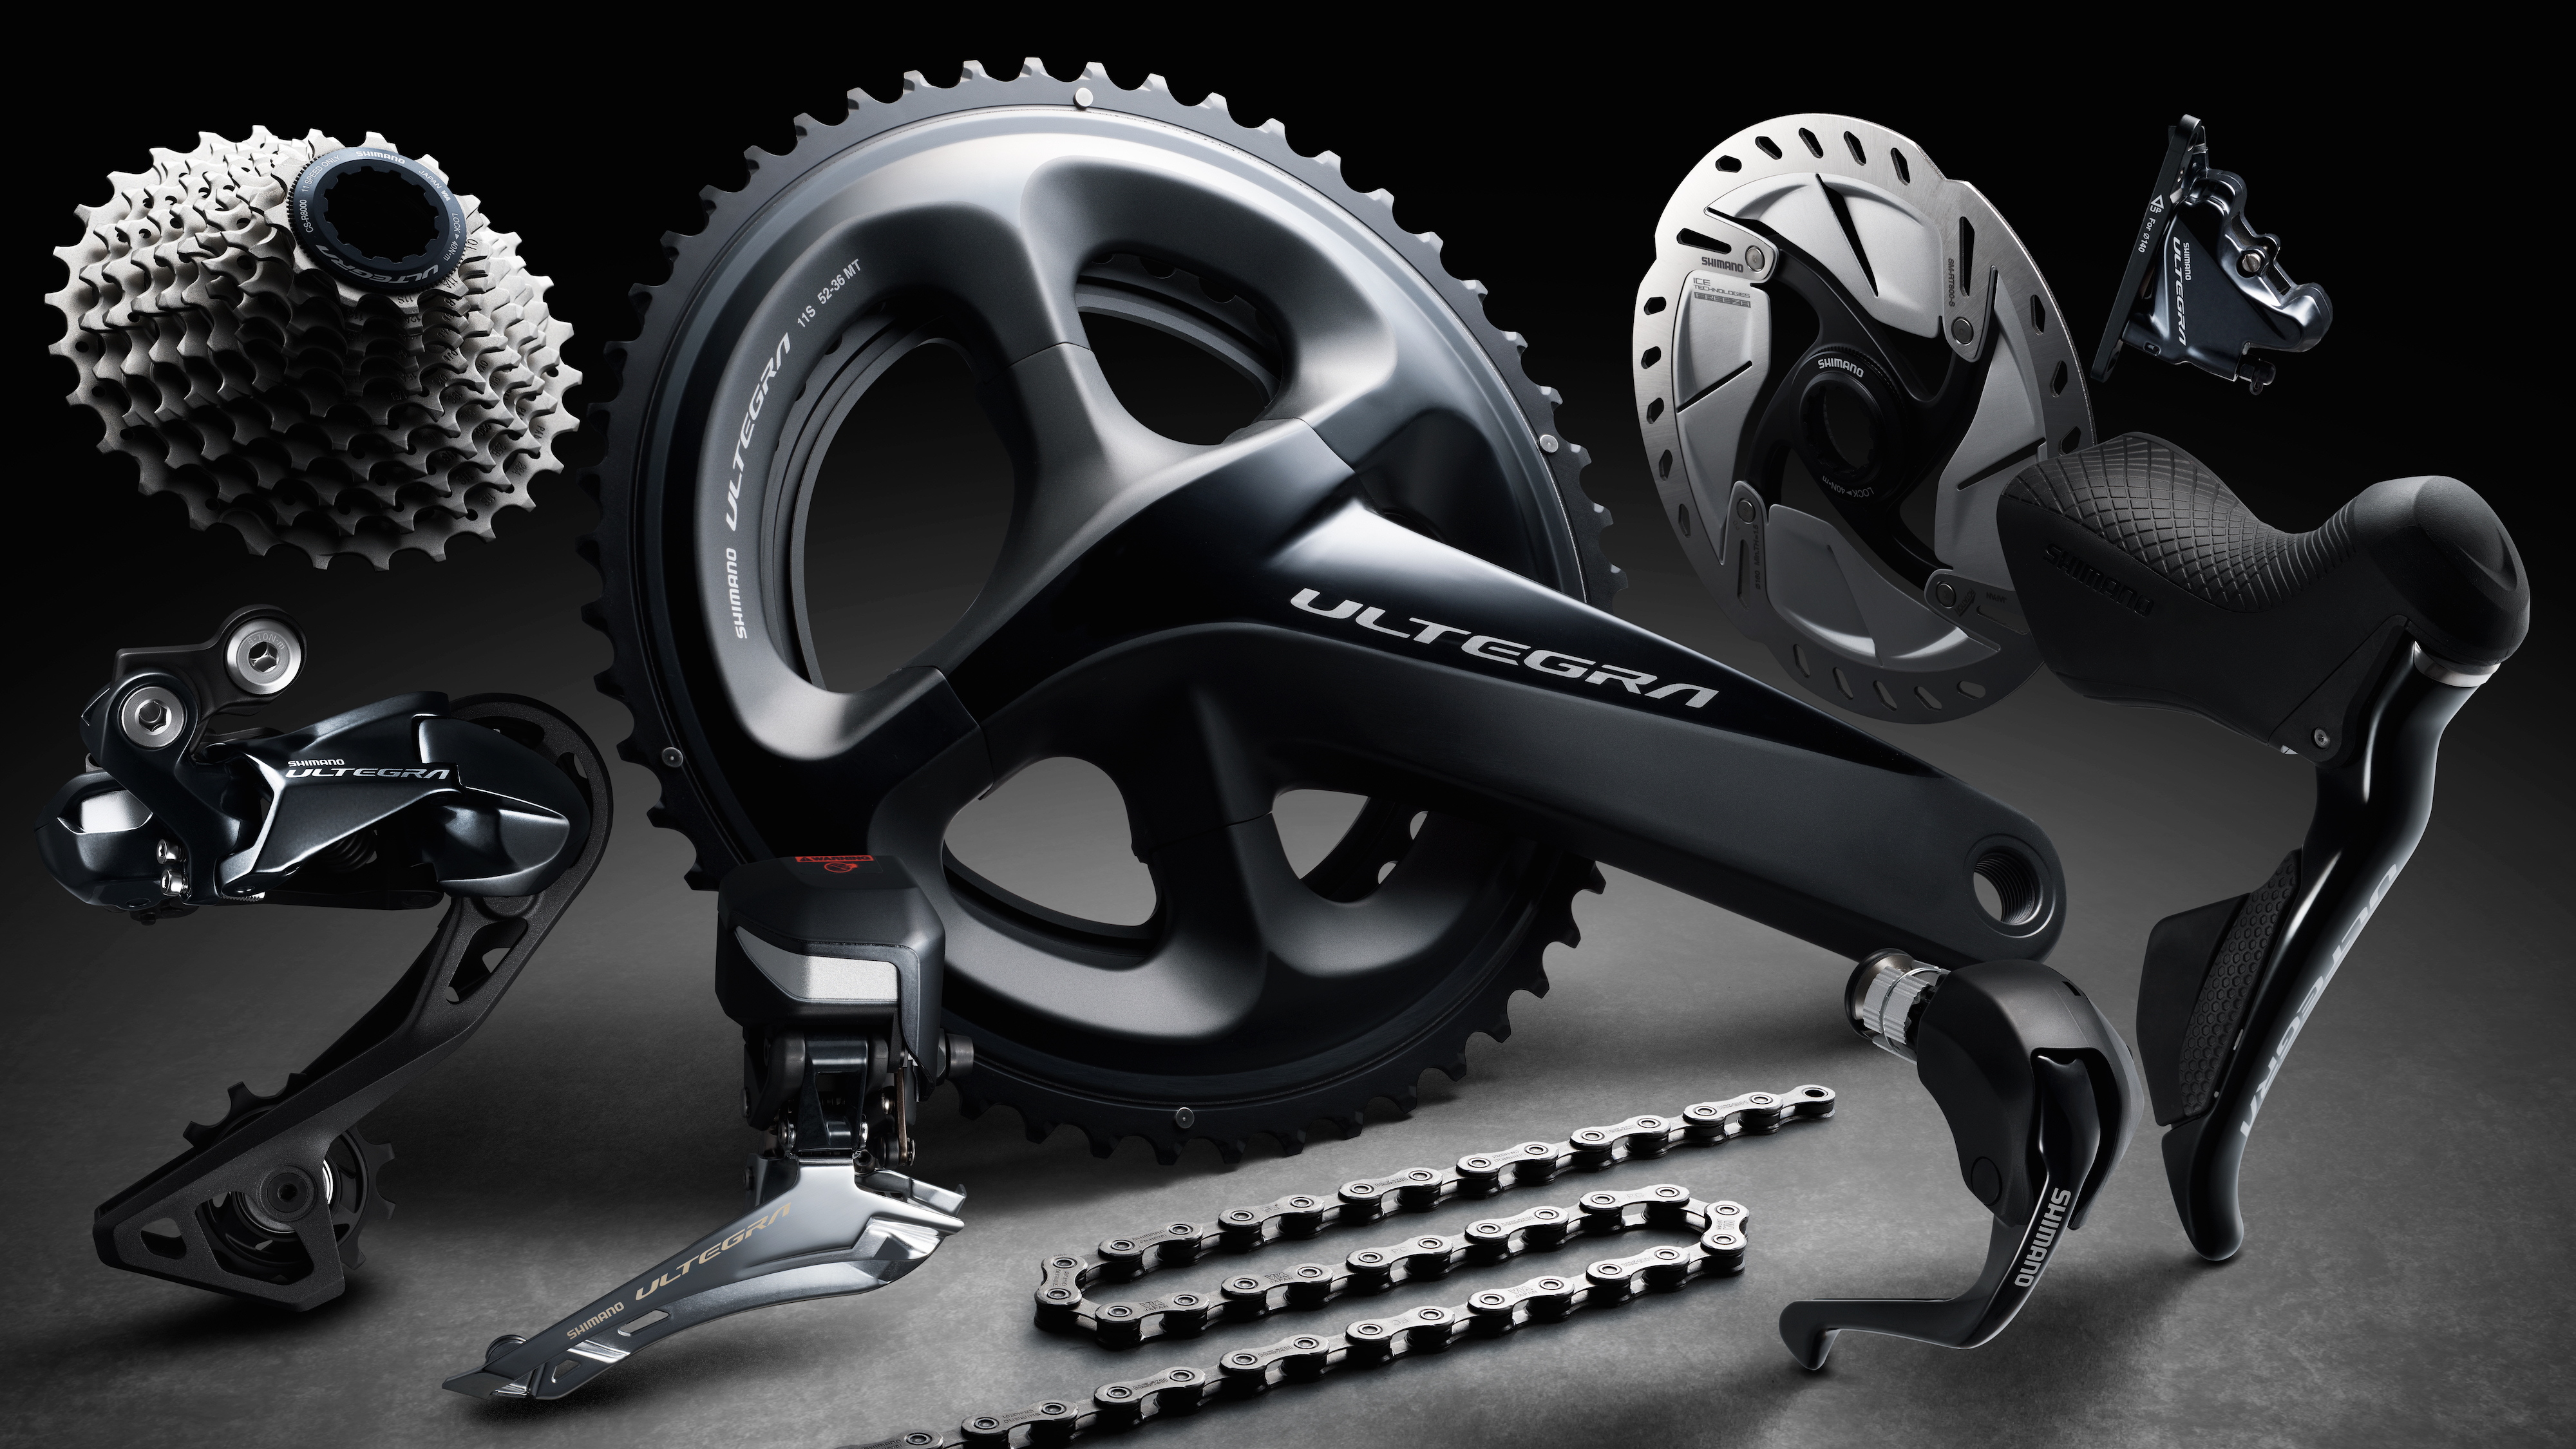 New Shimano Ultegra R8000 groupset includes disc brakes and synchronised electronic shift ...